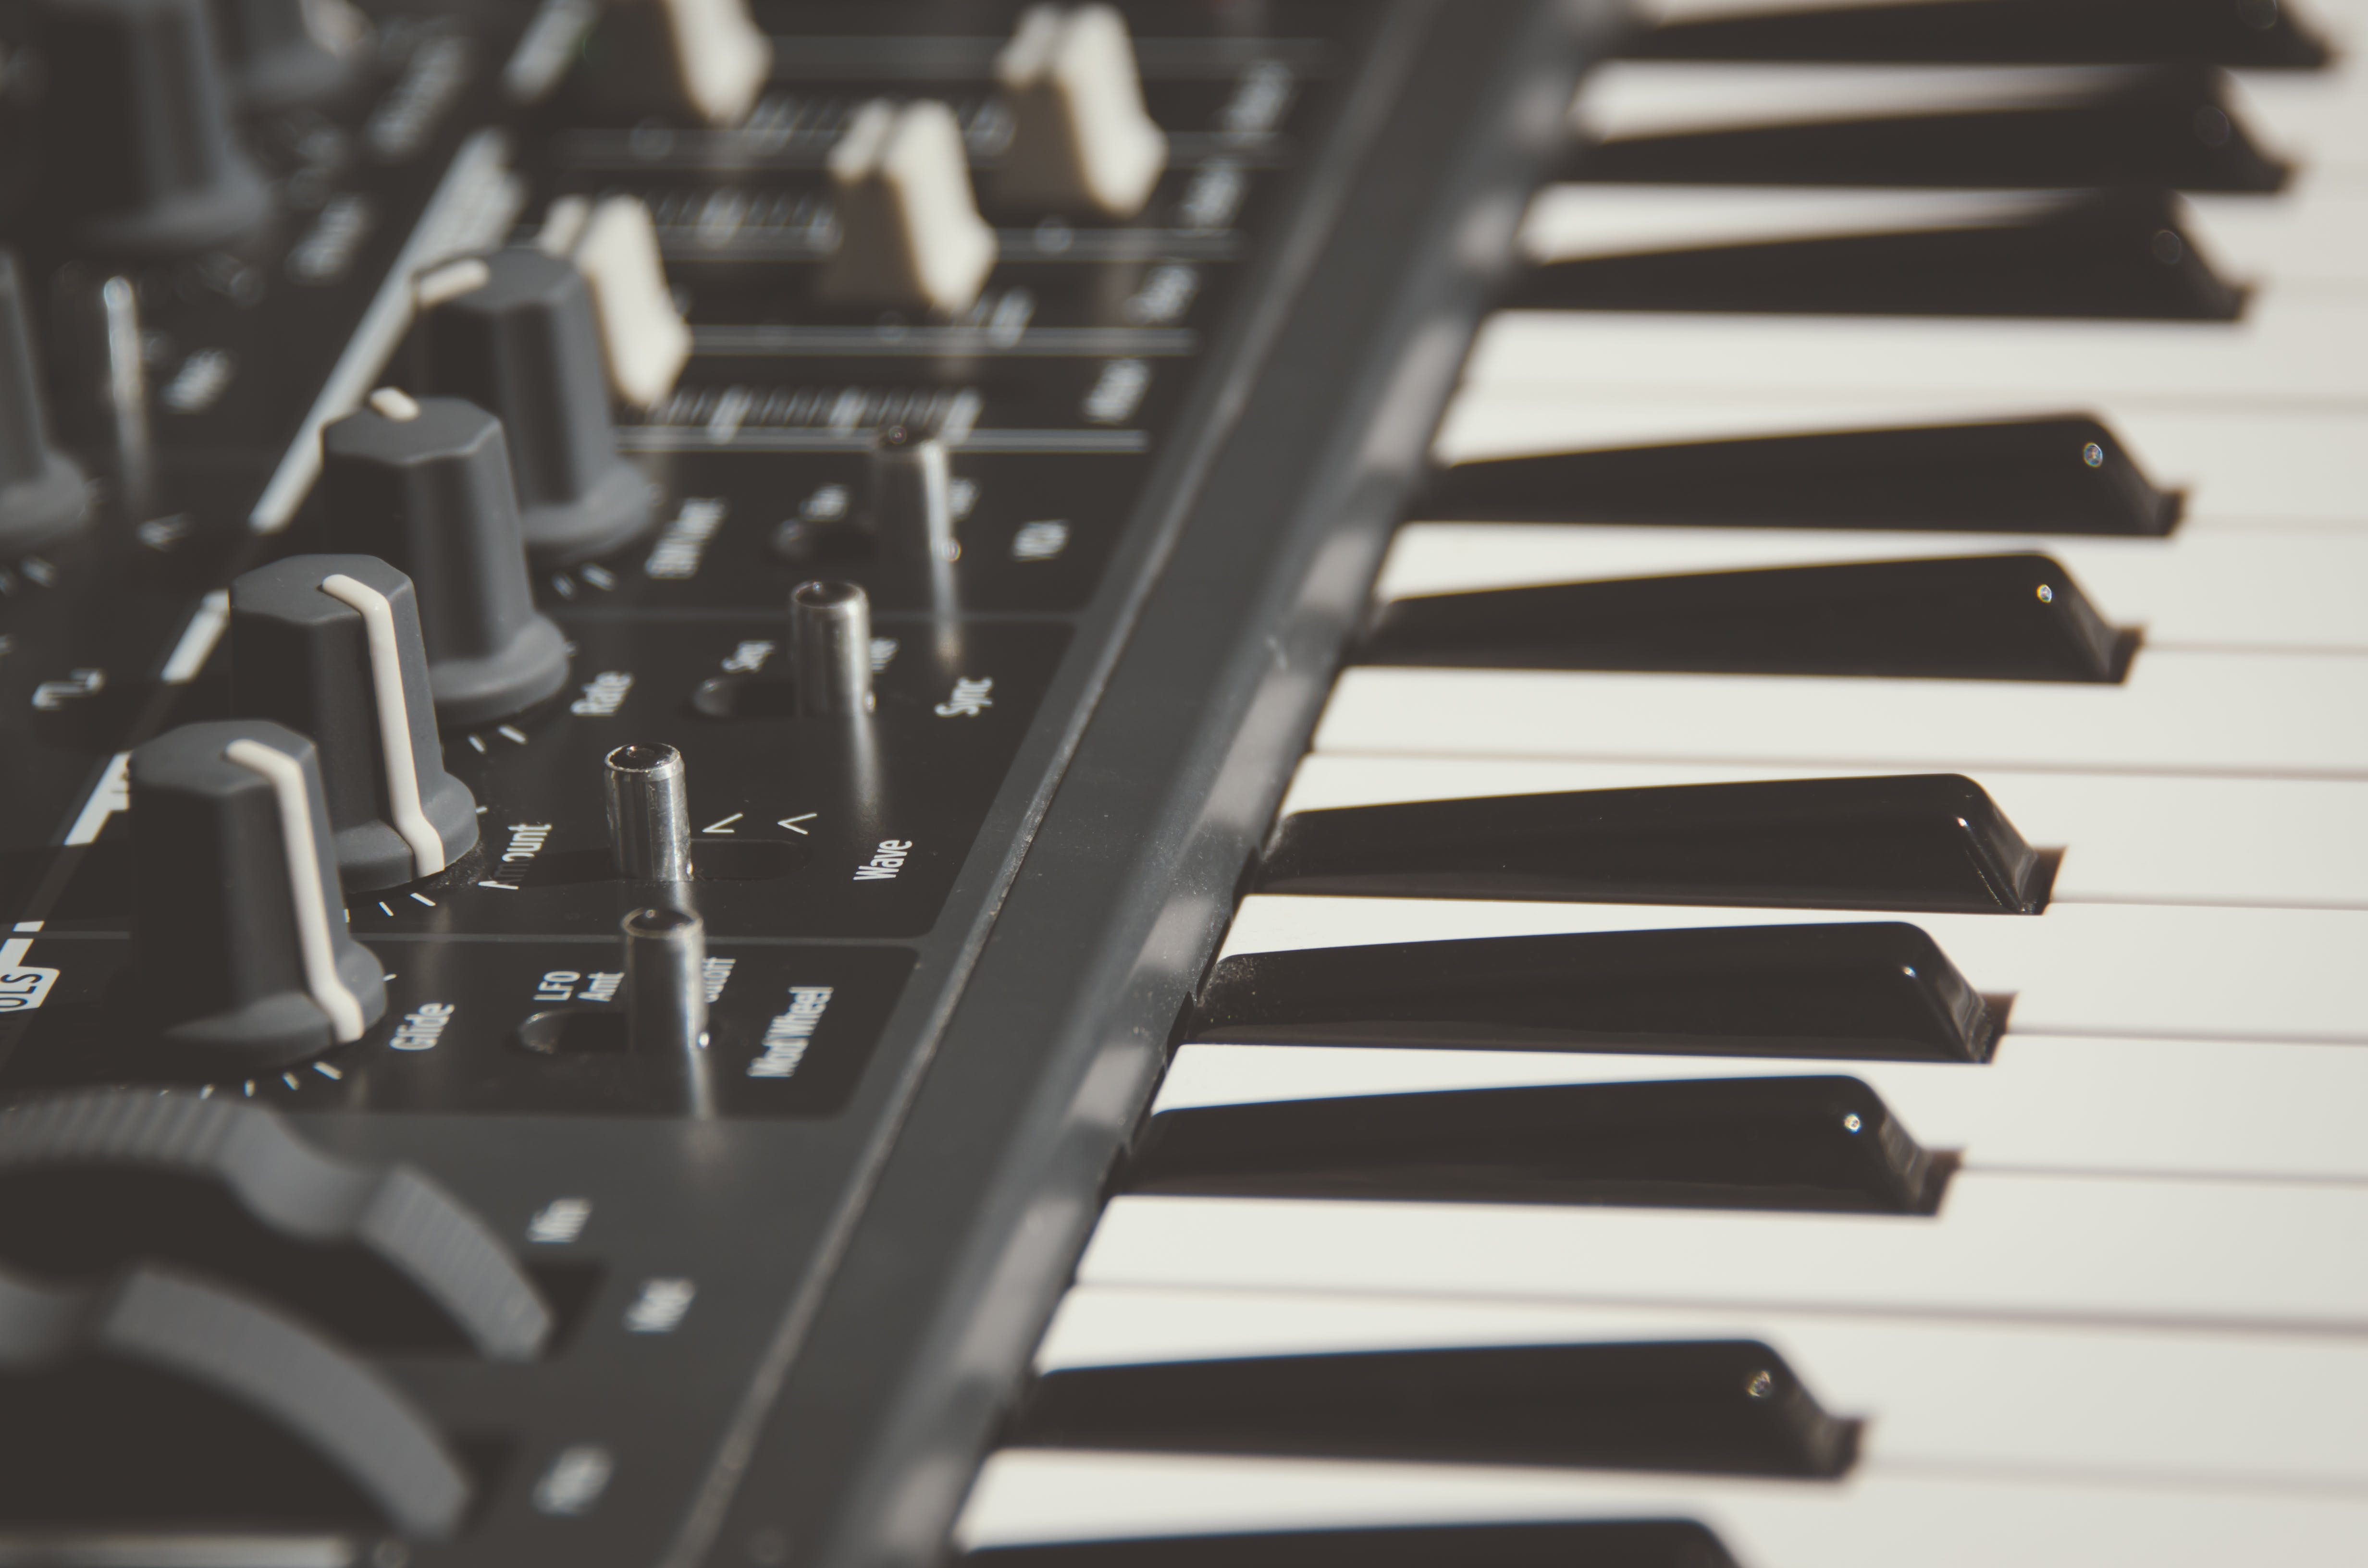 Black Electronic Keyboard